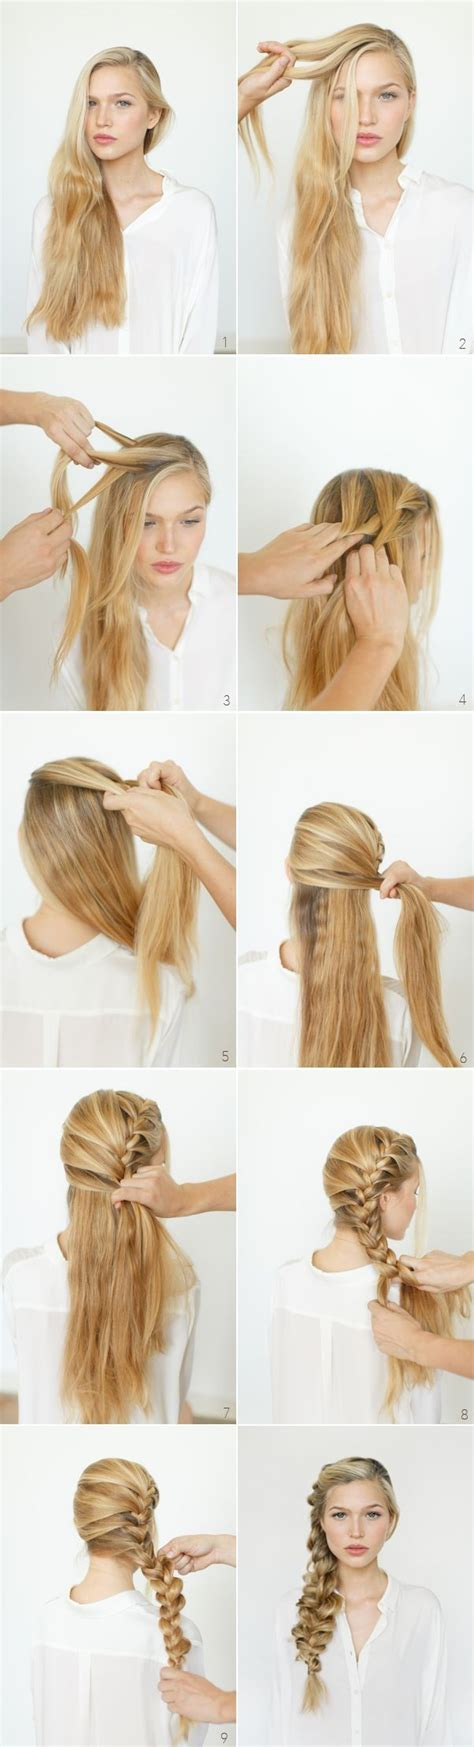 Hairstyles For Long Hair Step By Step Video | step by step hairstyles for long hair long hairstyles